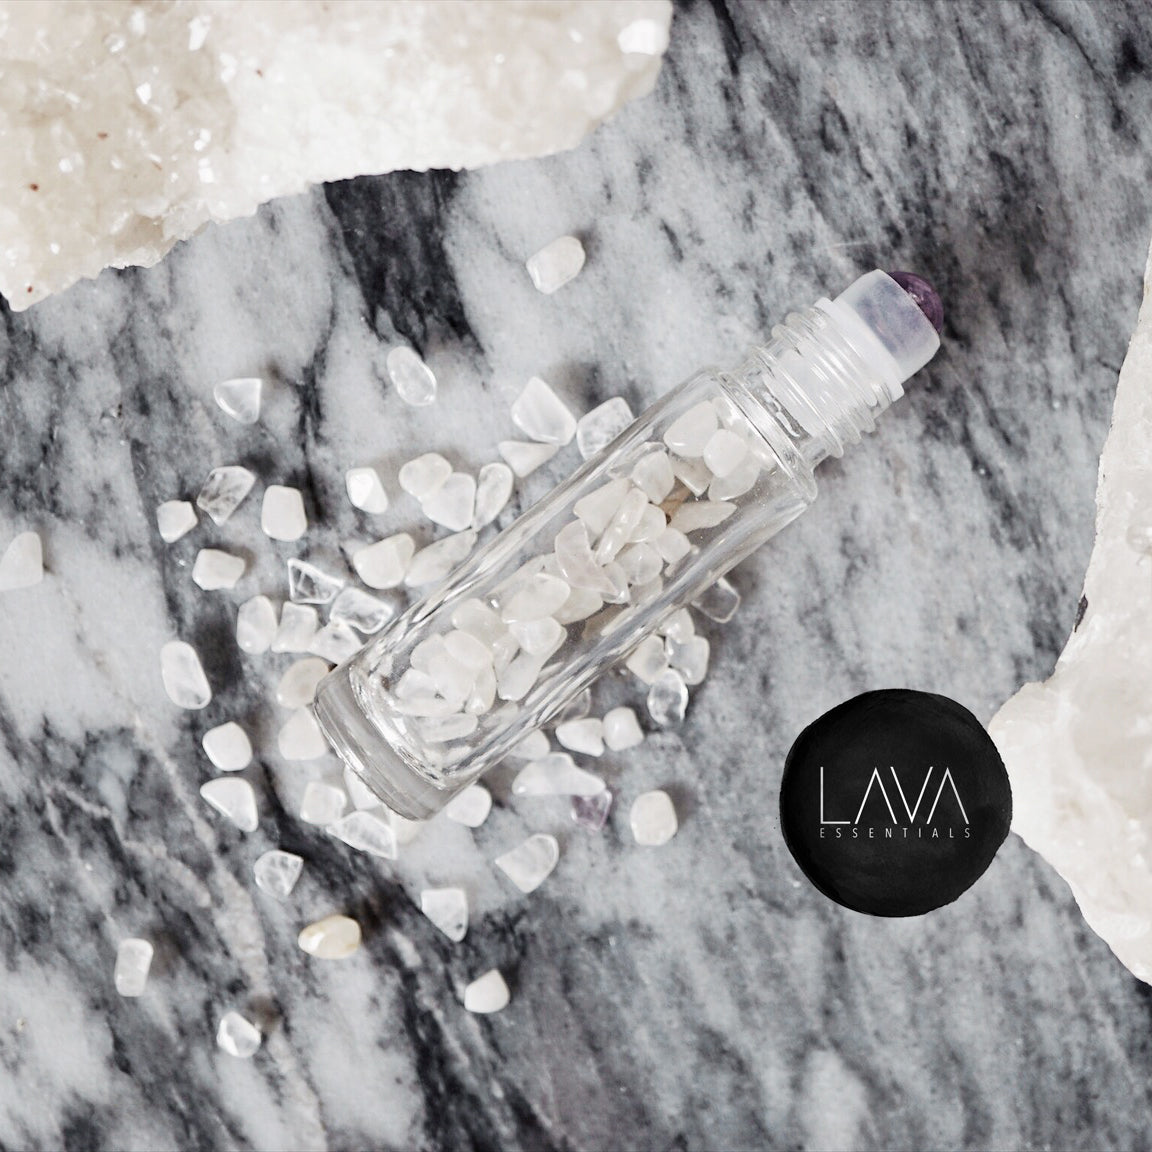 Snow White Quartz - Lava Essential Oils